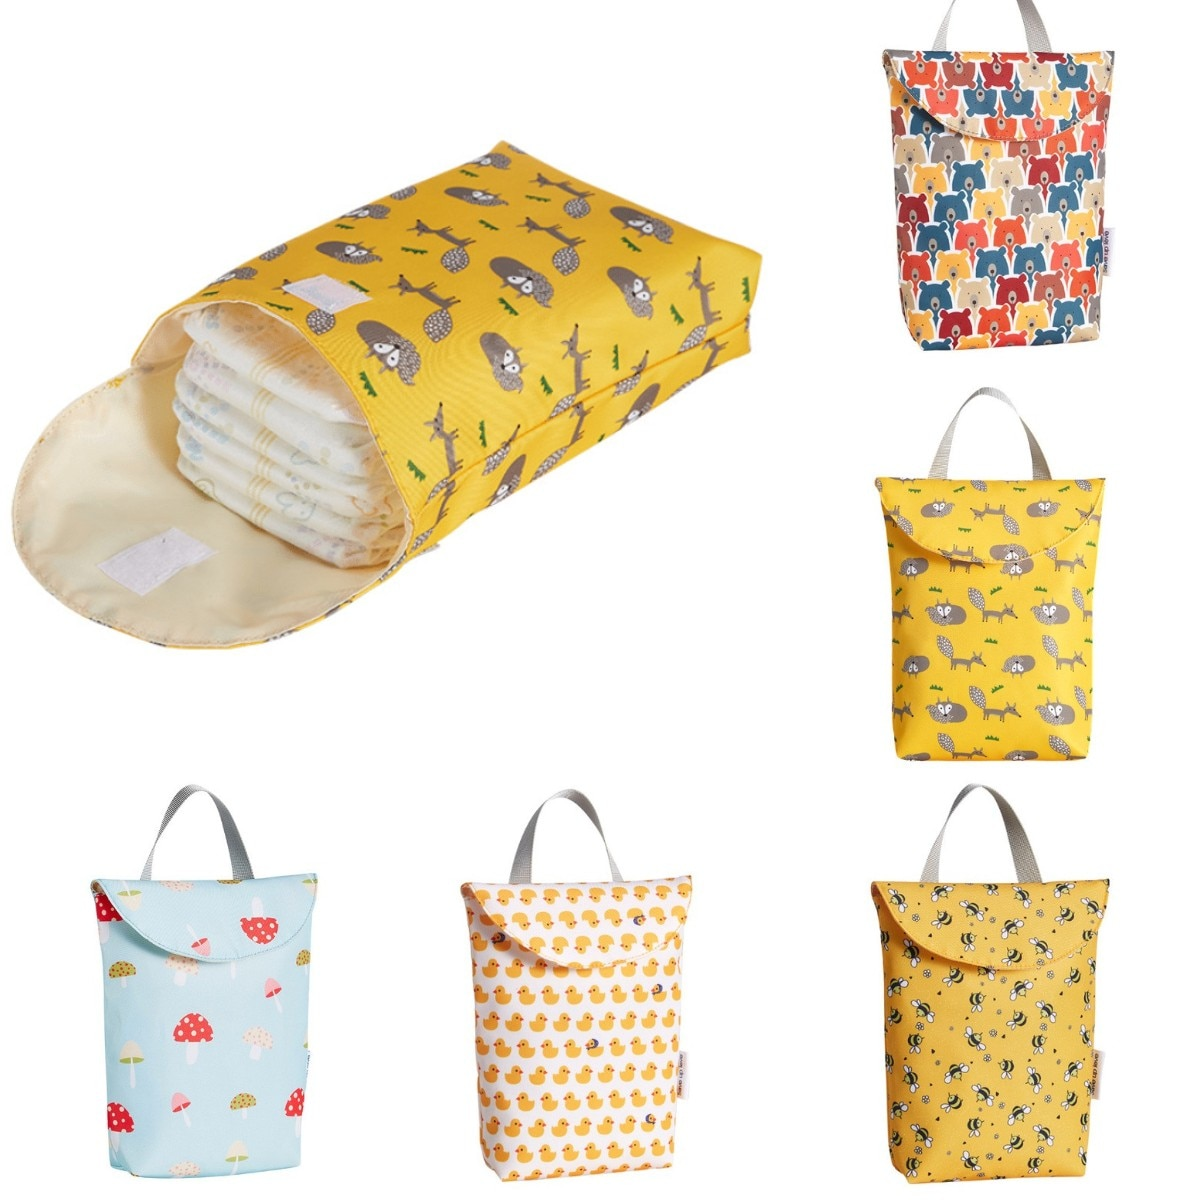 Baby Diaper Nappy Bags For Mom Reusable Multifunctional Waterproof Diaper Organizer Fashion Portable Big Capacity Mummy Bag Gift